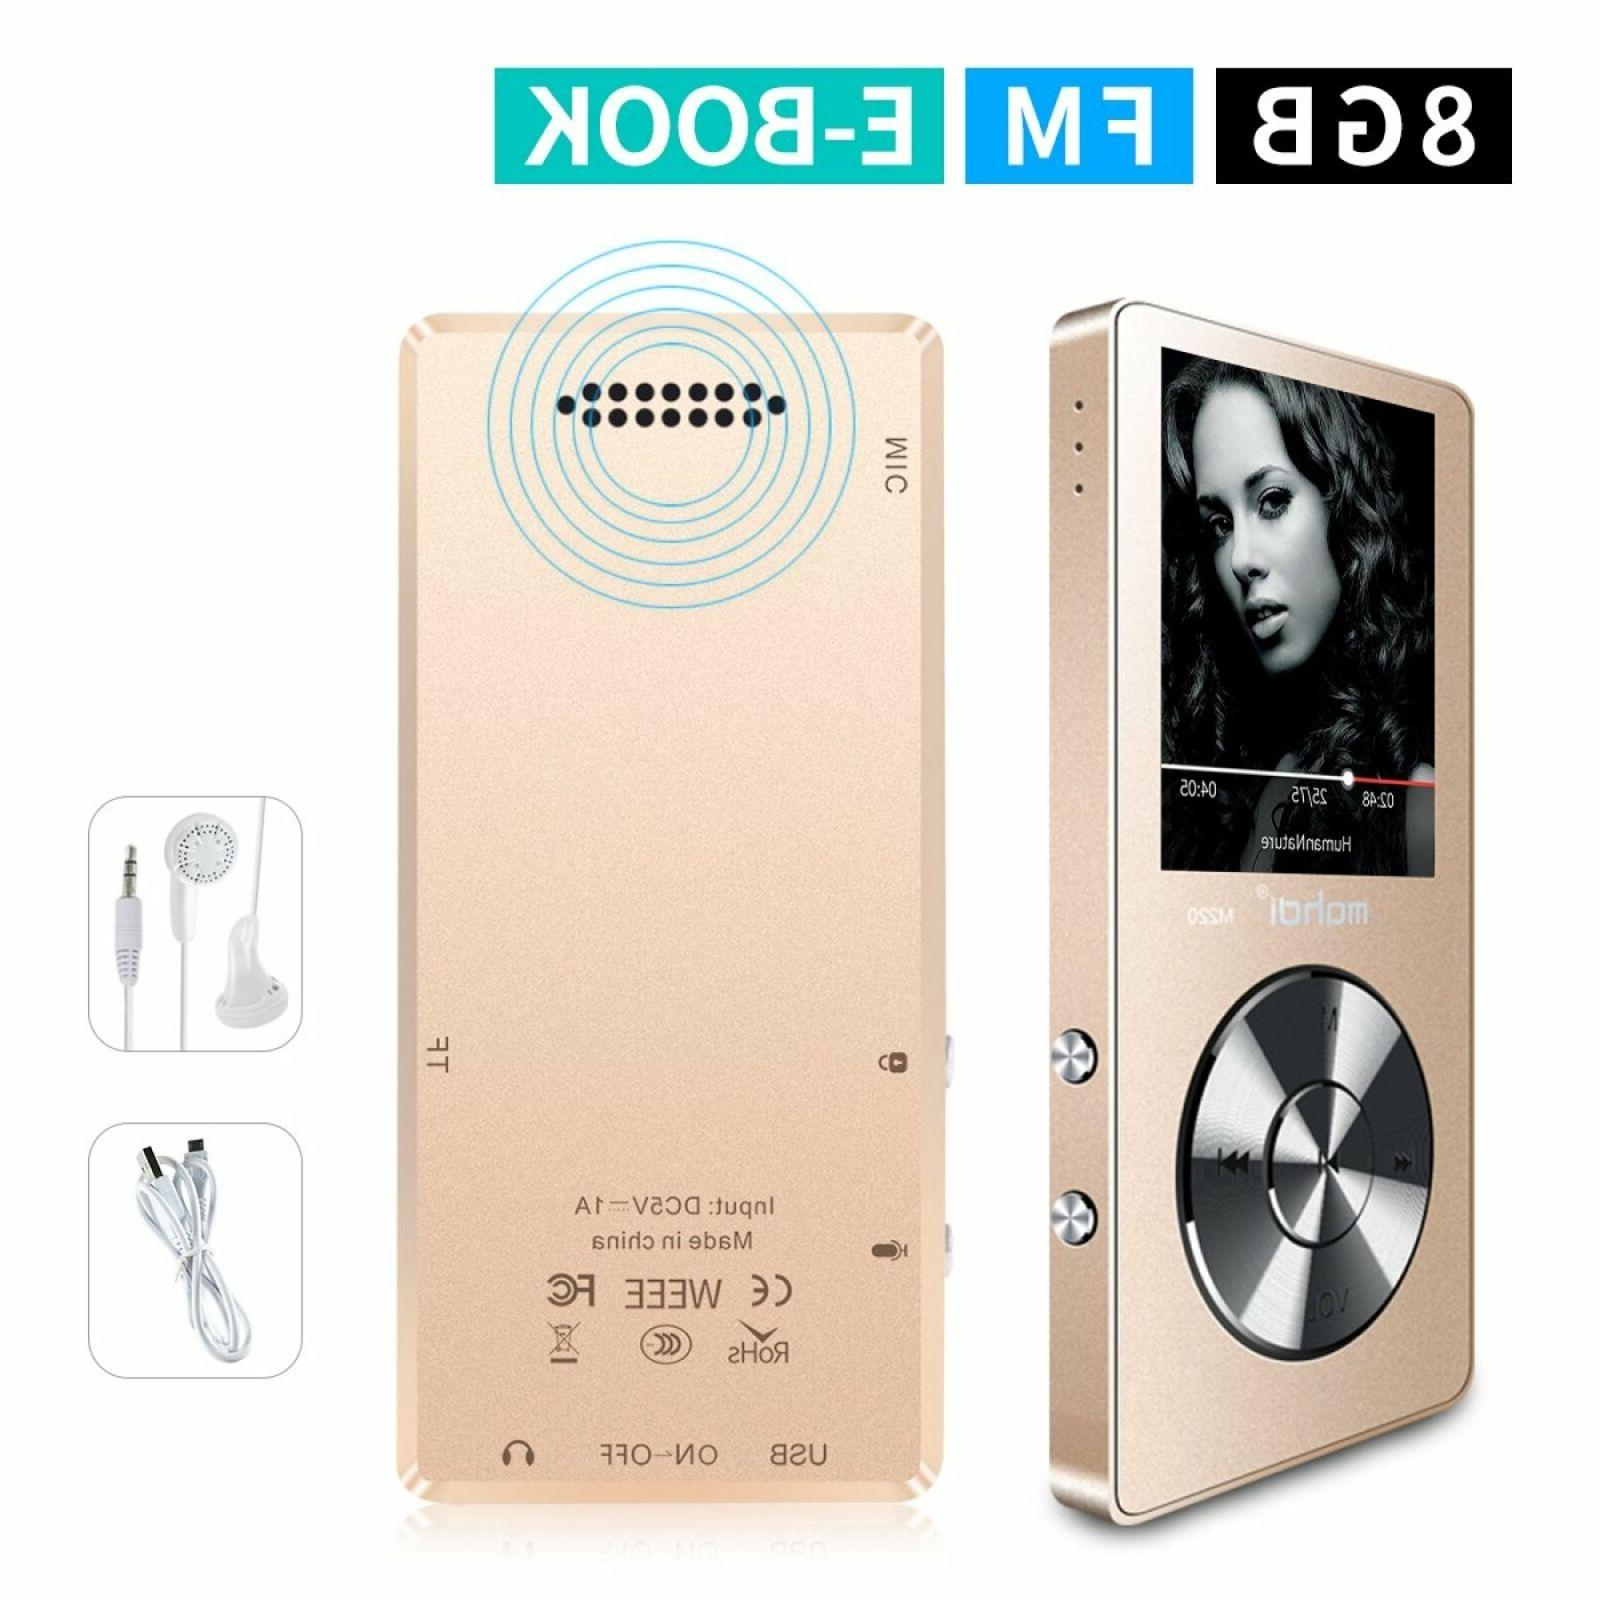 MYMAHDI Portable Player, Voice Recorder/FM Radio 70 Playback External Speaker HD Headphone,